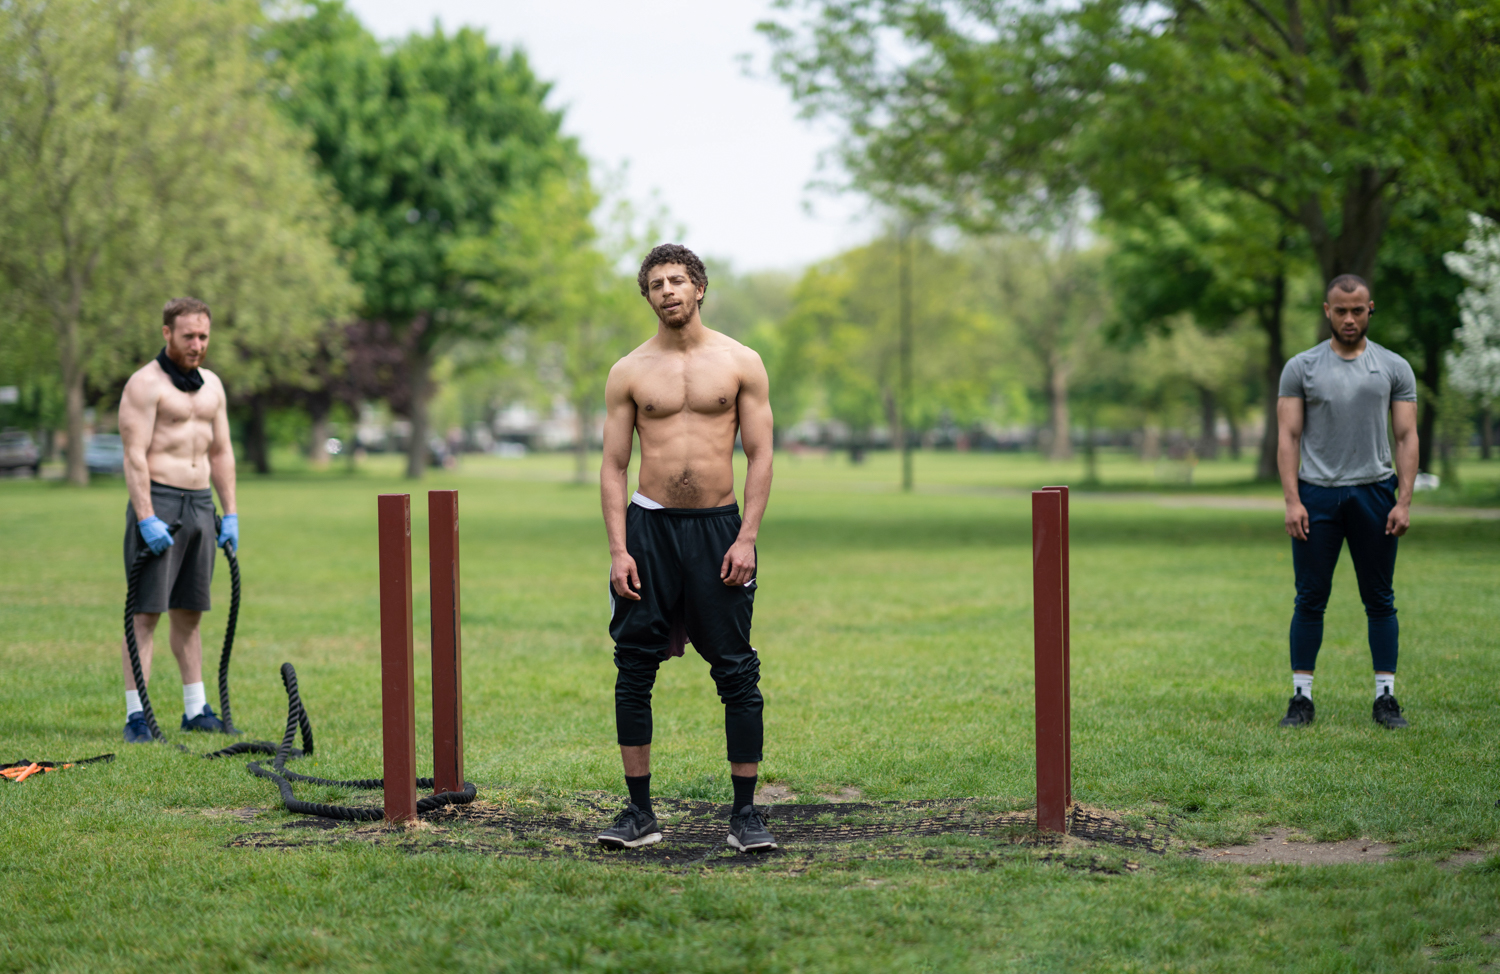 Photograph of 3 men in a park facing the camera mid-exercise regime